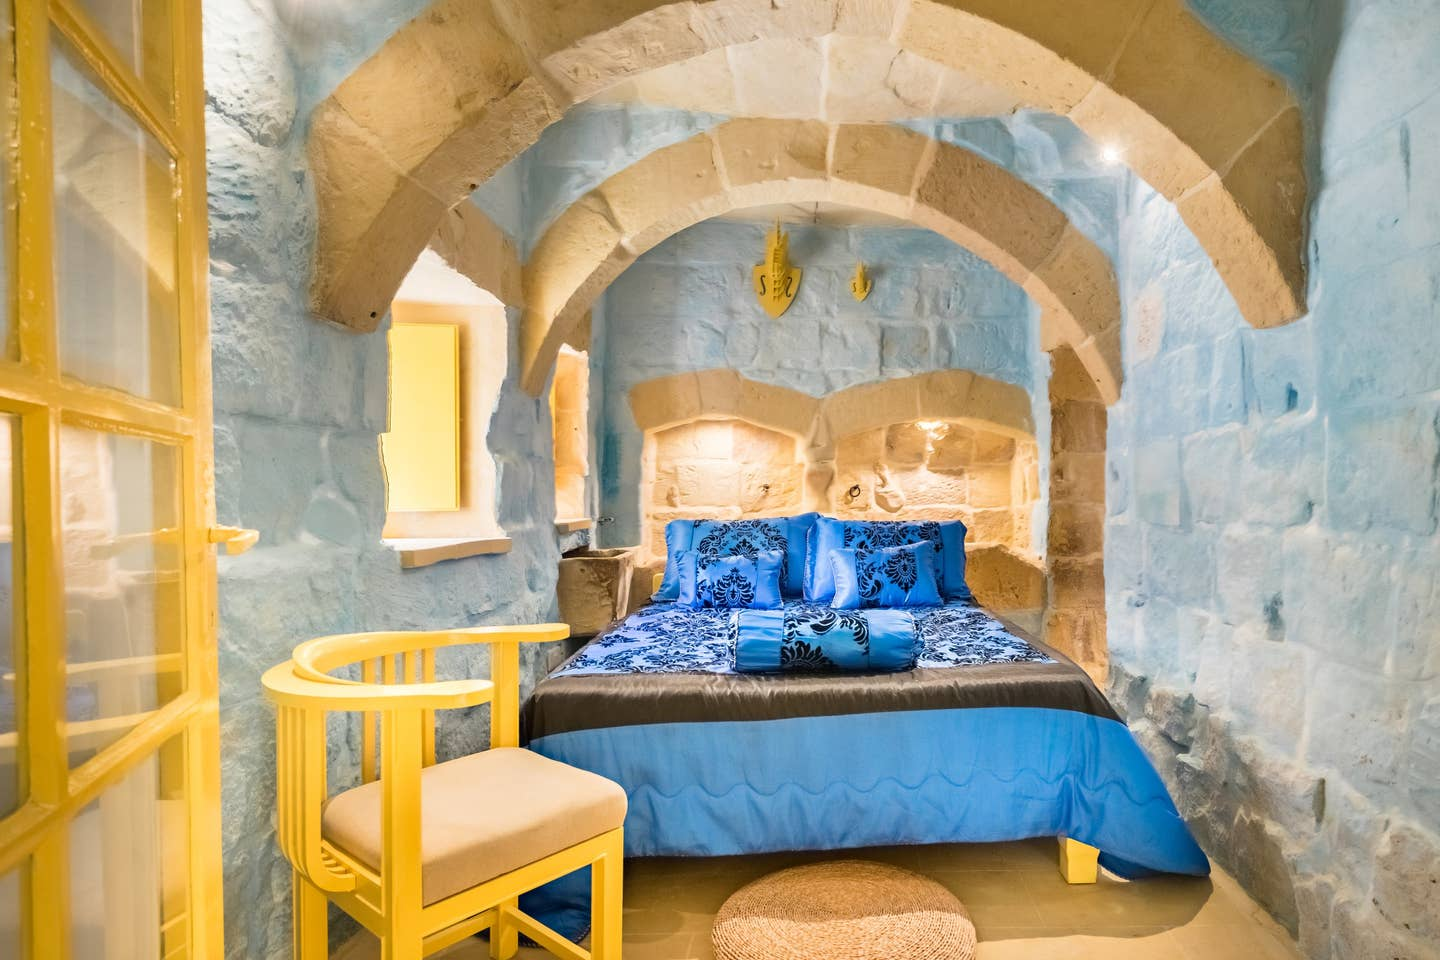 blue bed in a bedroom with blue walls